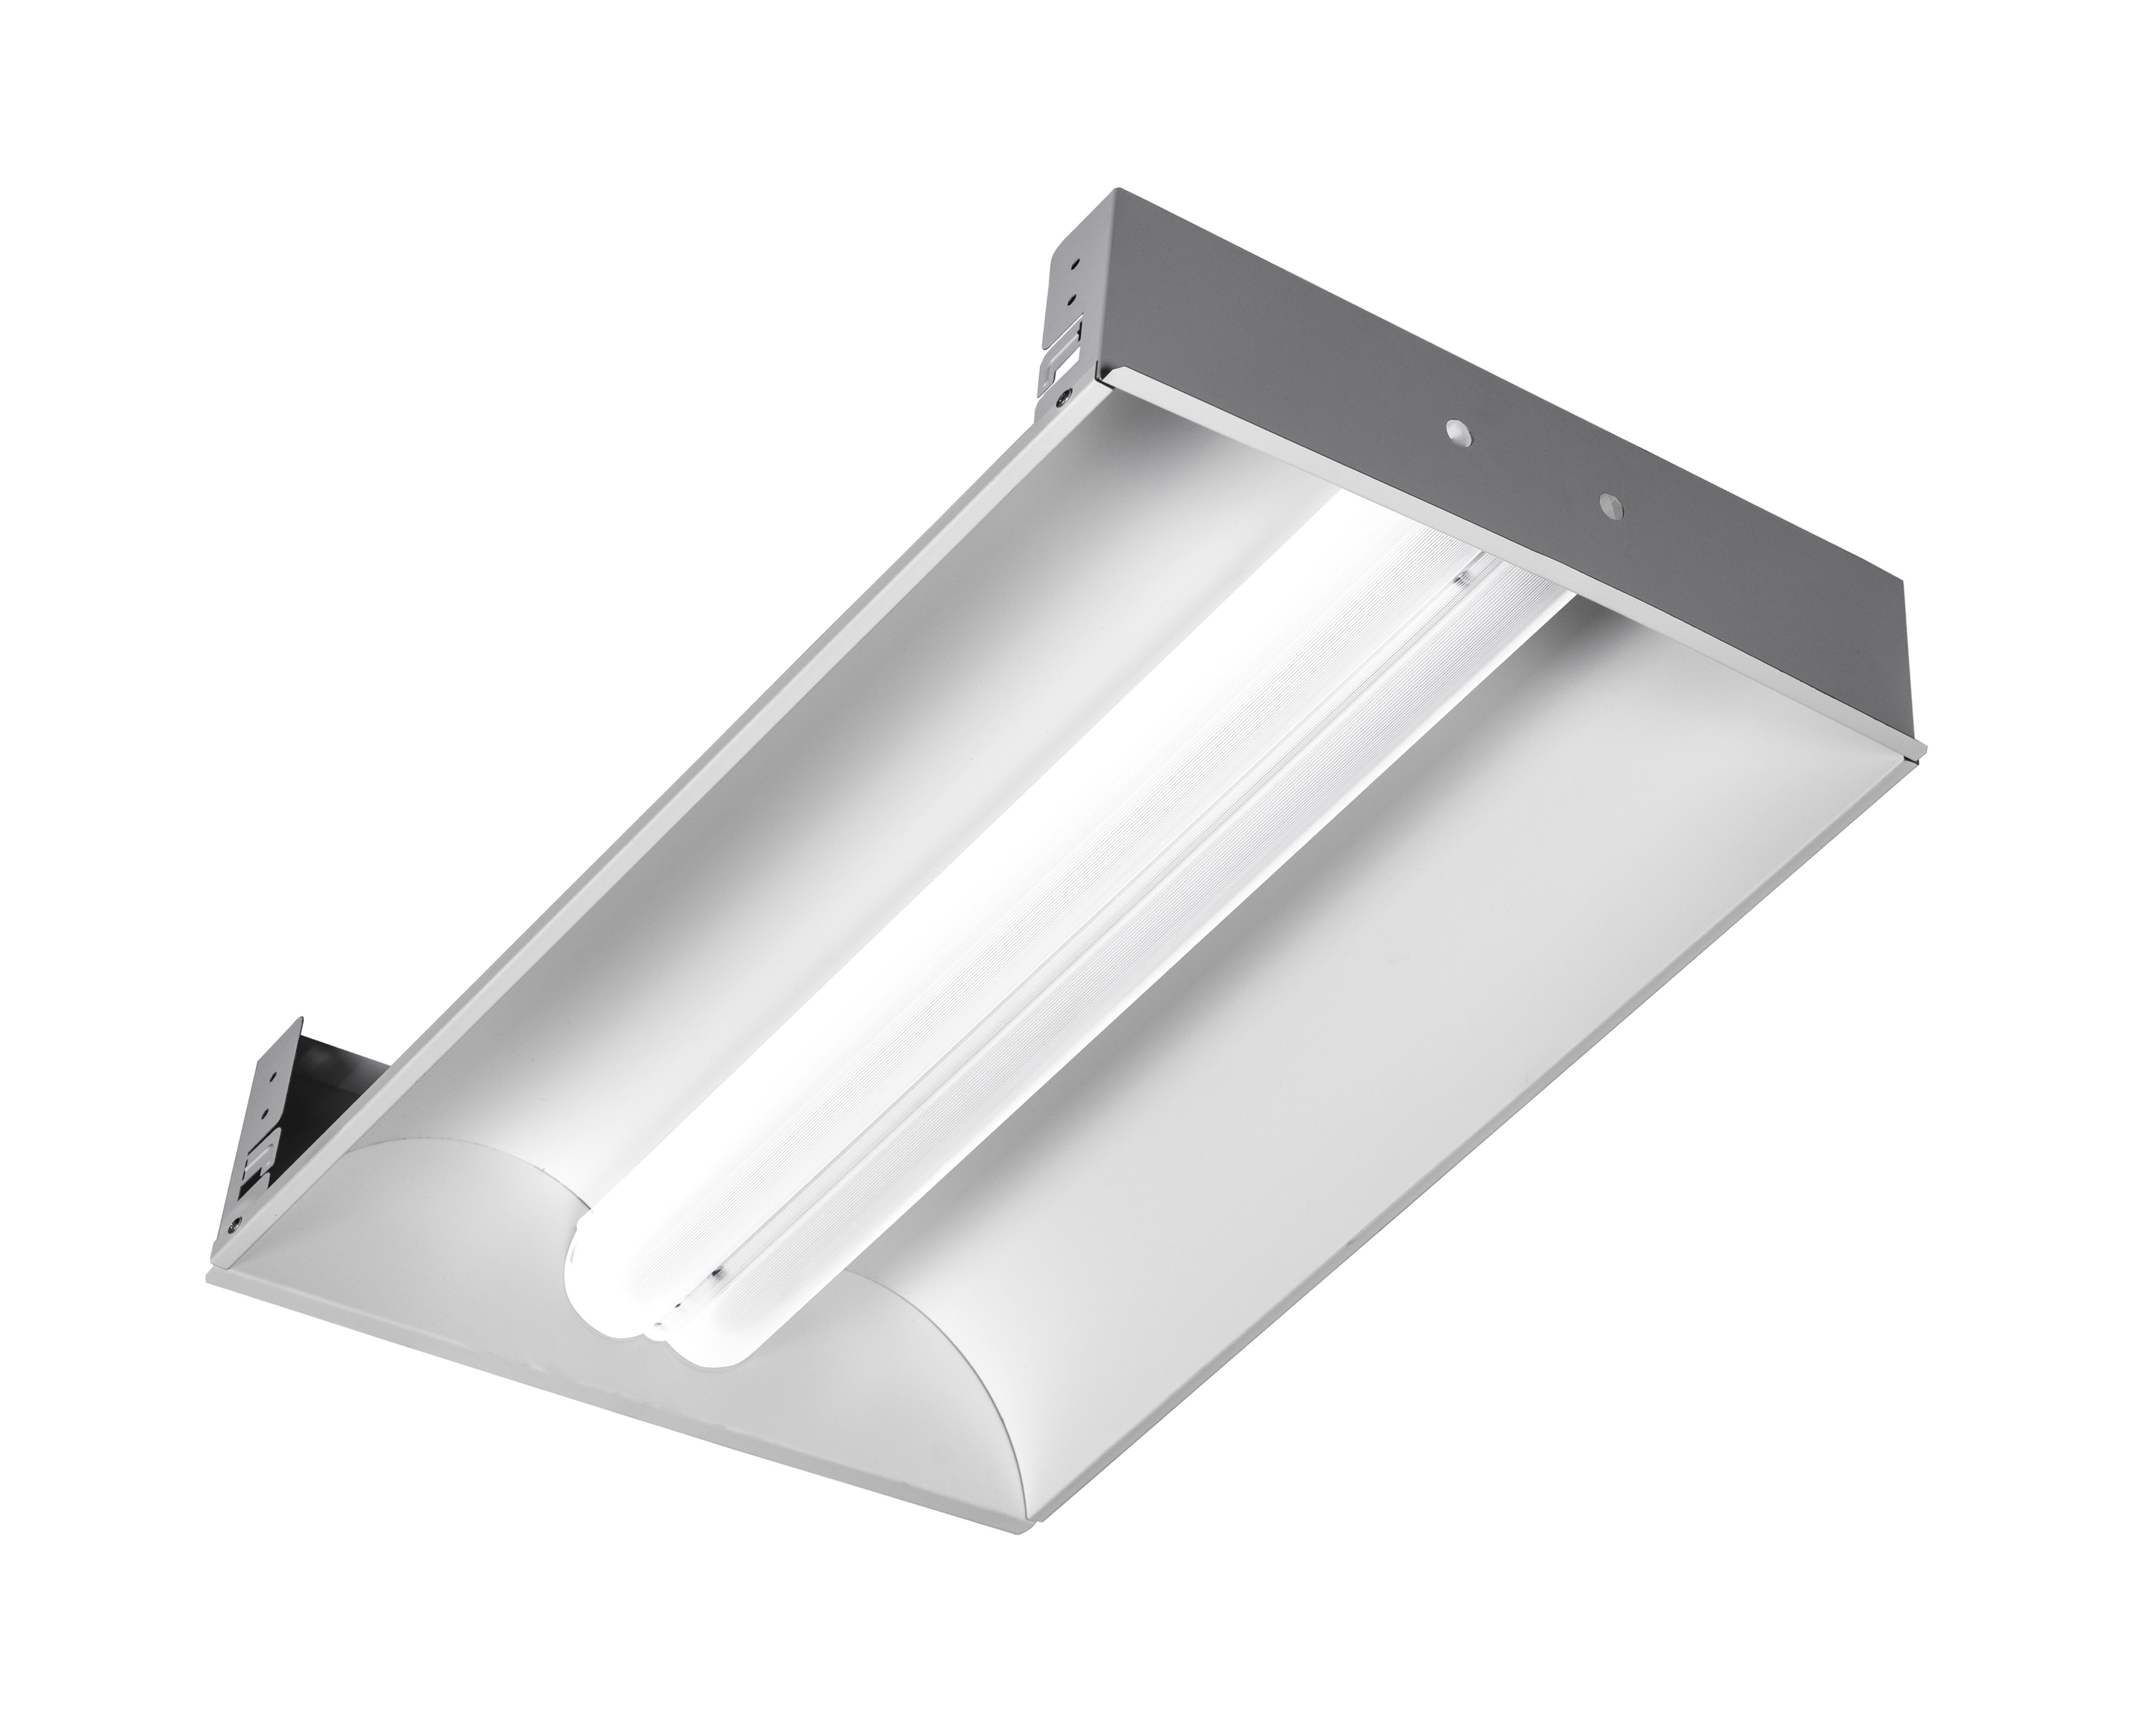 9e846e4d79f Alcon Lighting 14033 Aces Architectural LED 2x4 Recessed Center Basket  Ribbed Direct Light Troffer. Double tap to zoom